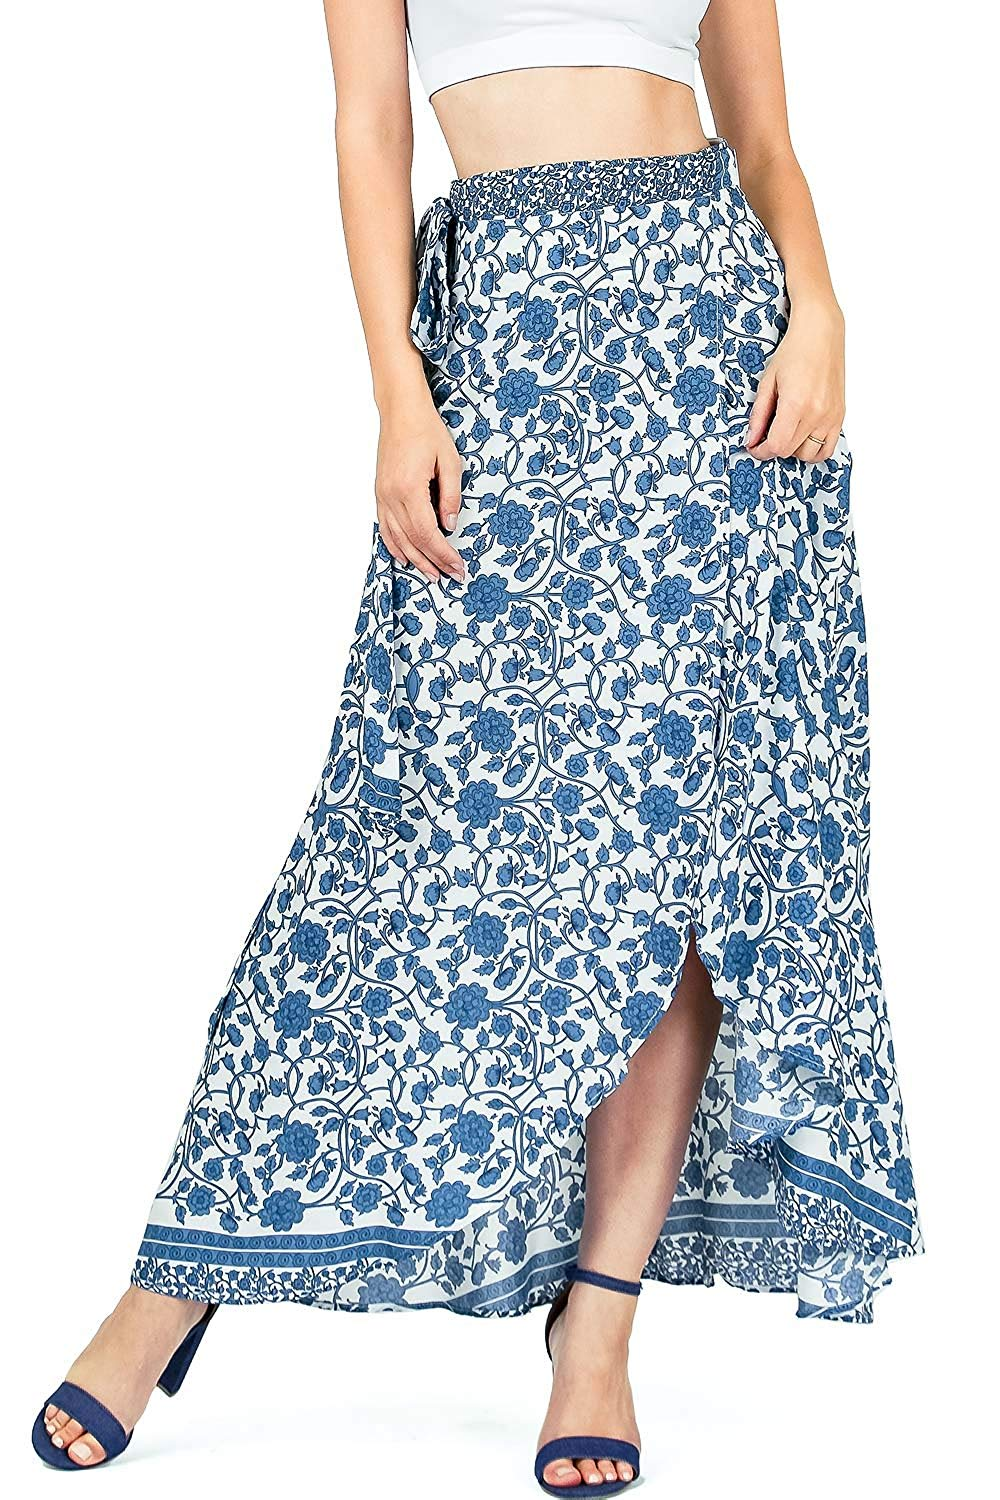 3118105511c Get Quotations · Aakaa Women s Juniors Wrap Style Floral Long Maxi Skirt